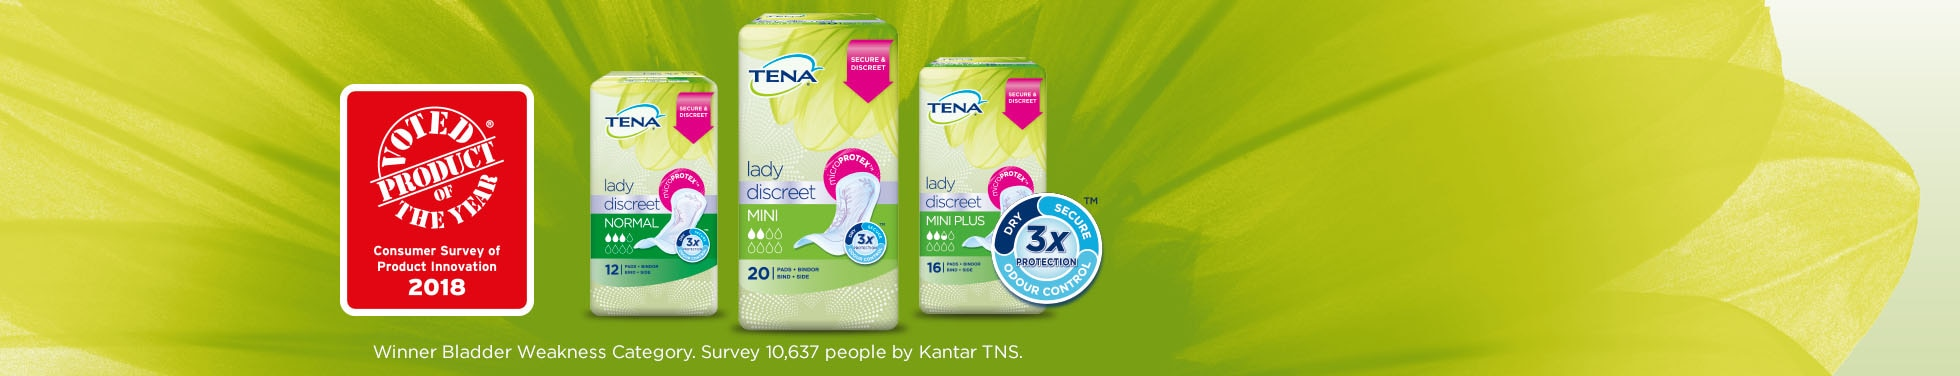 TENA Lady Discreet Normal Mini and Mini Plus Range Packs with illustration voted product of the year 2018 and three times protection